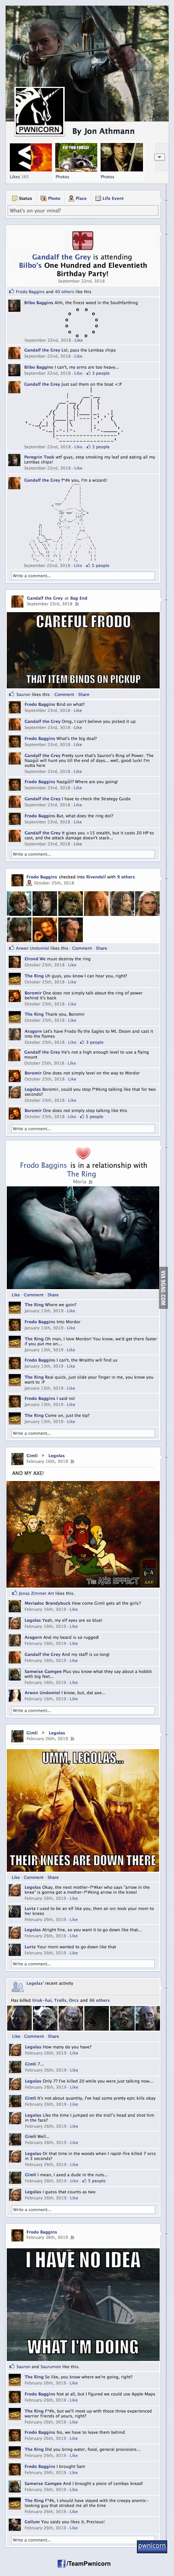 The Lord of the Rings on Facebook